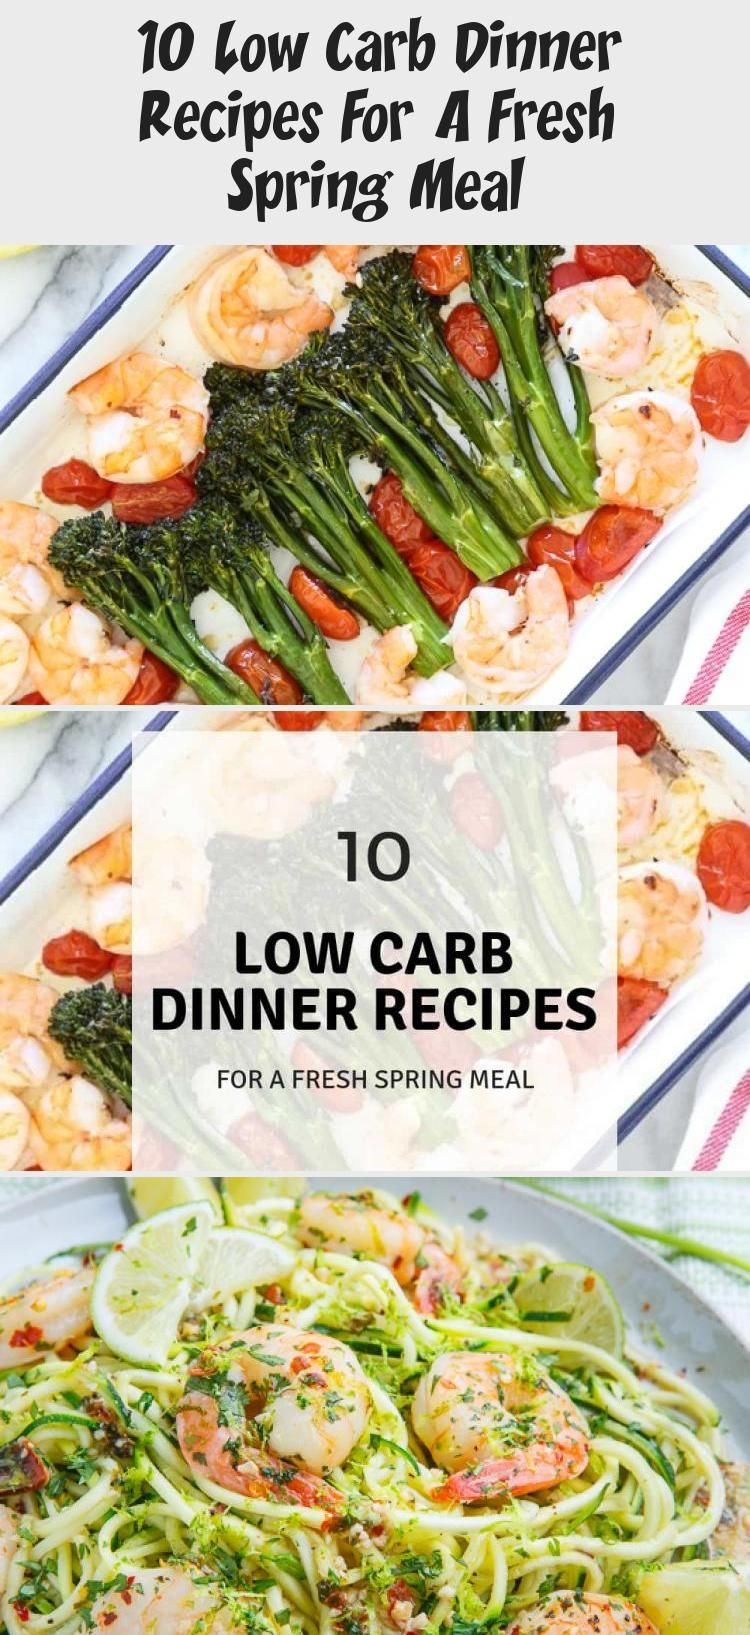 10 Low Carb Dinner Recipes For A Fresh Spring Meal 10 Low Carb Dinner Recipes For A Fresh Spring Meal